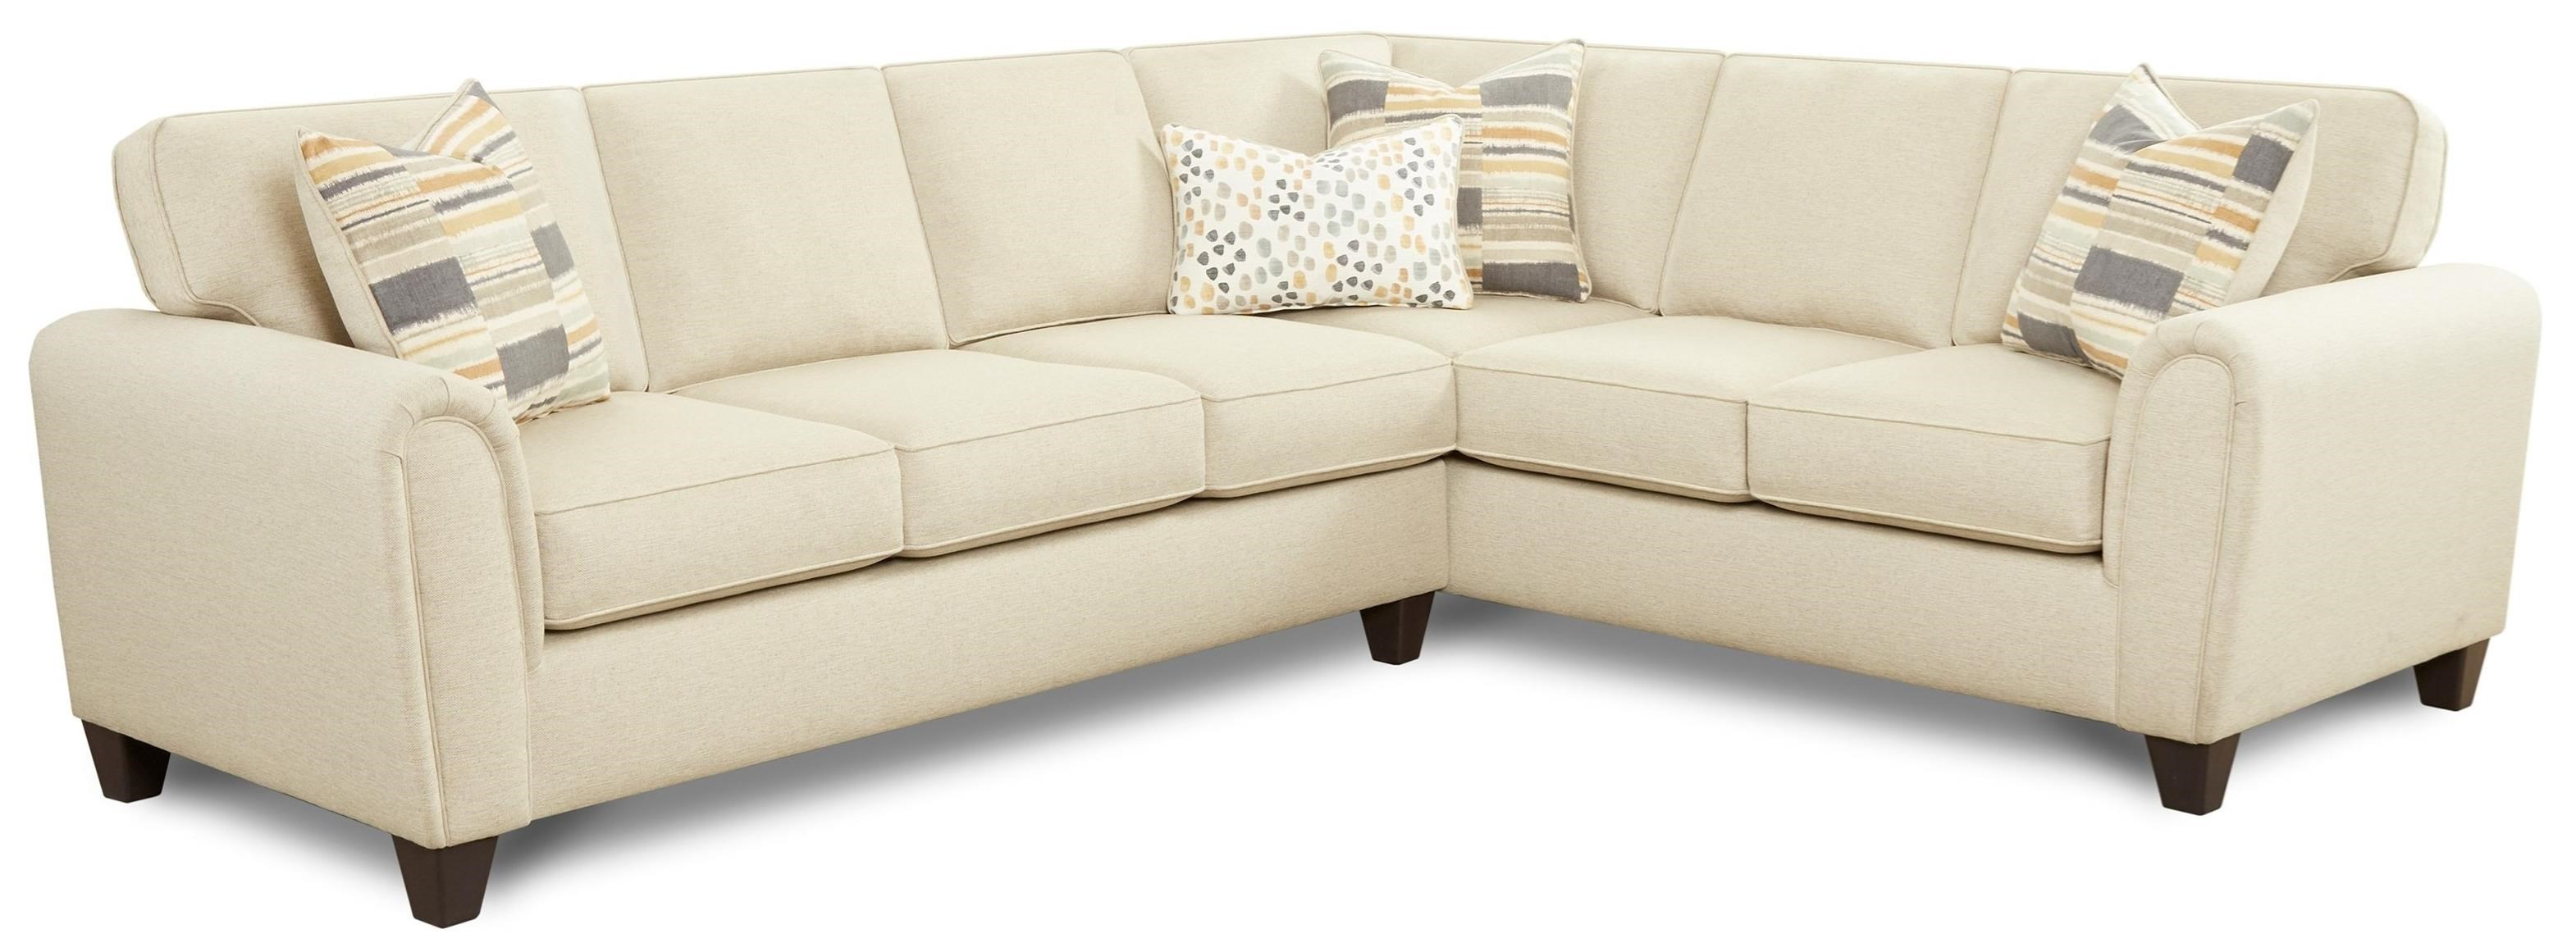 49-00 2-Piece L-Shape Sectional by FN at Lindy's Furniture Company